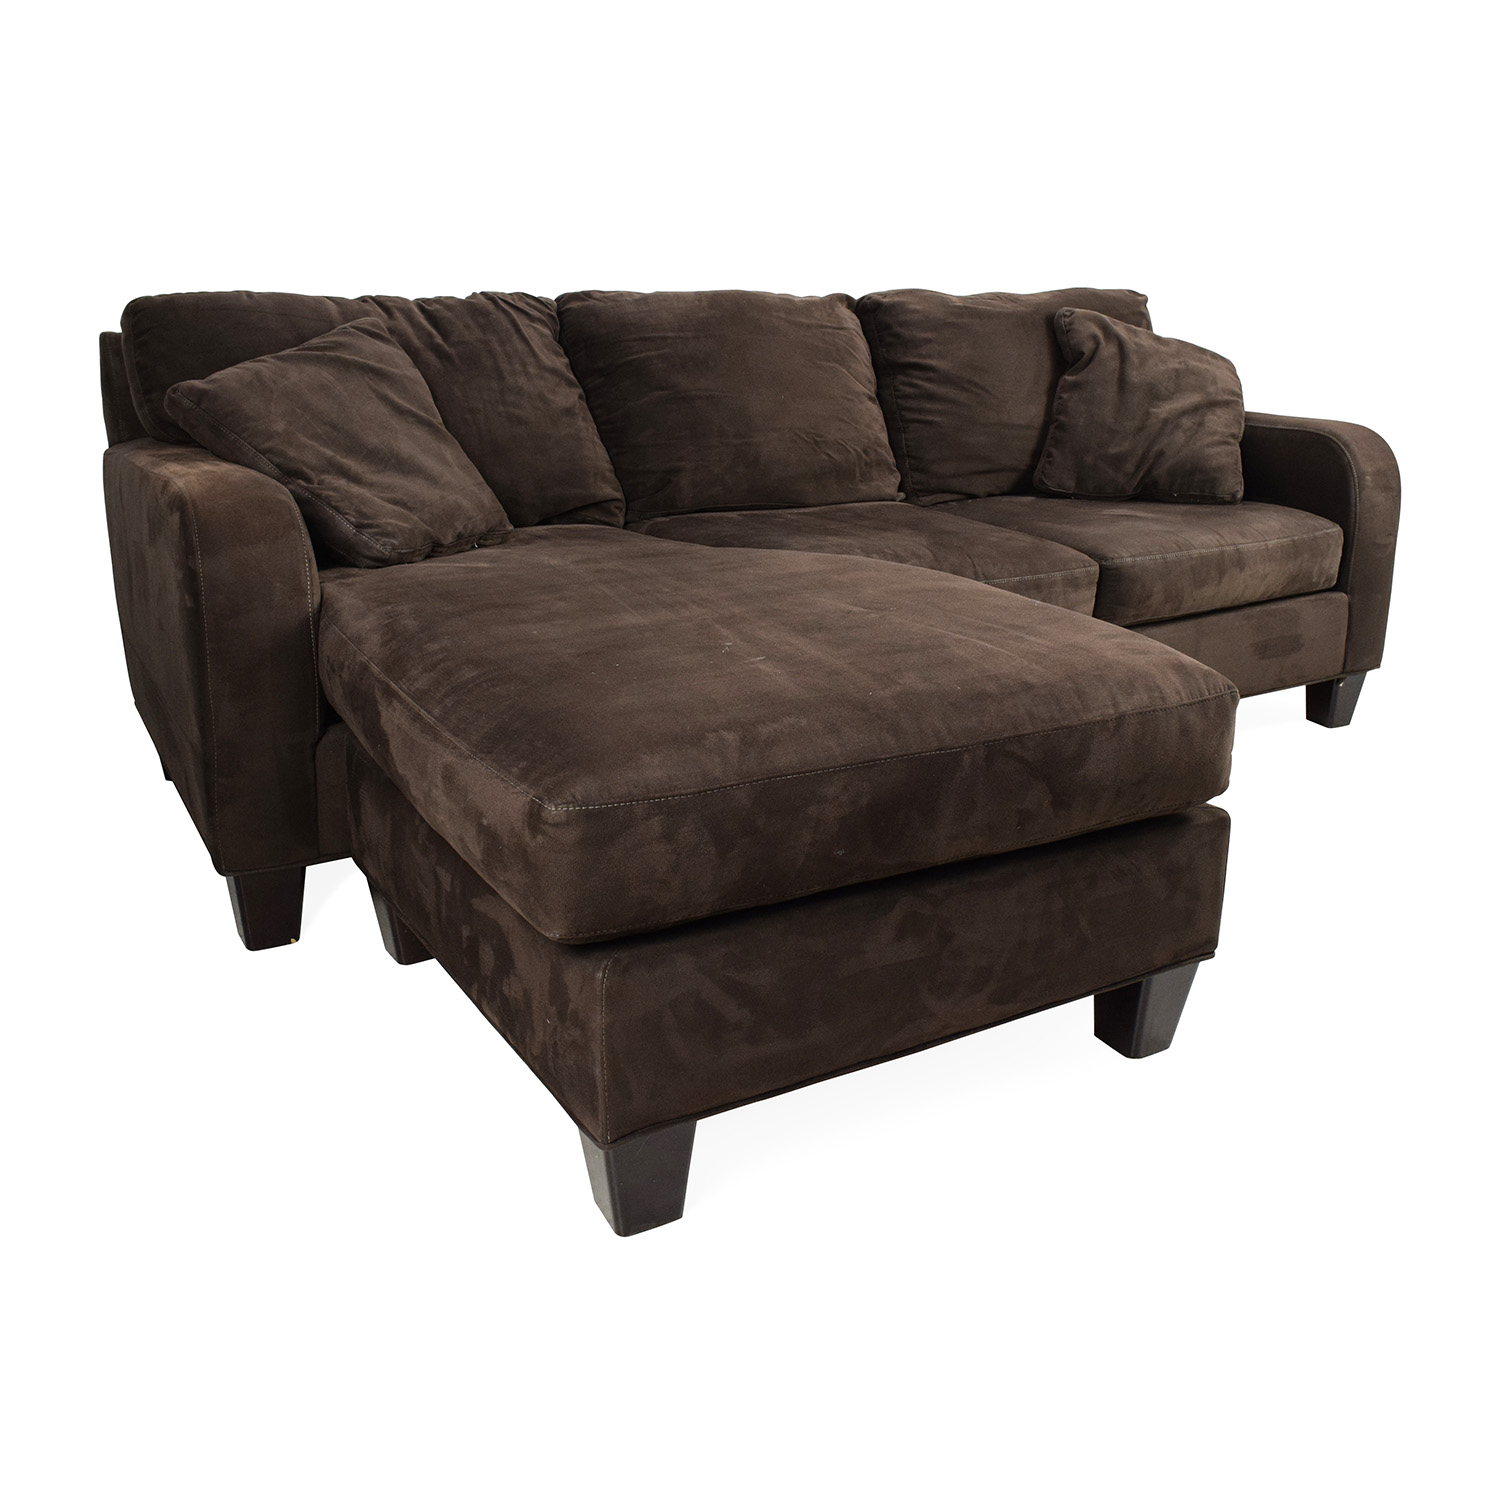 Bailey Microfiber Chaise Sofa